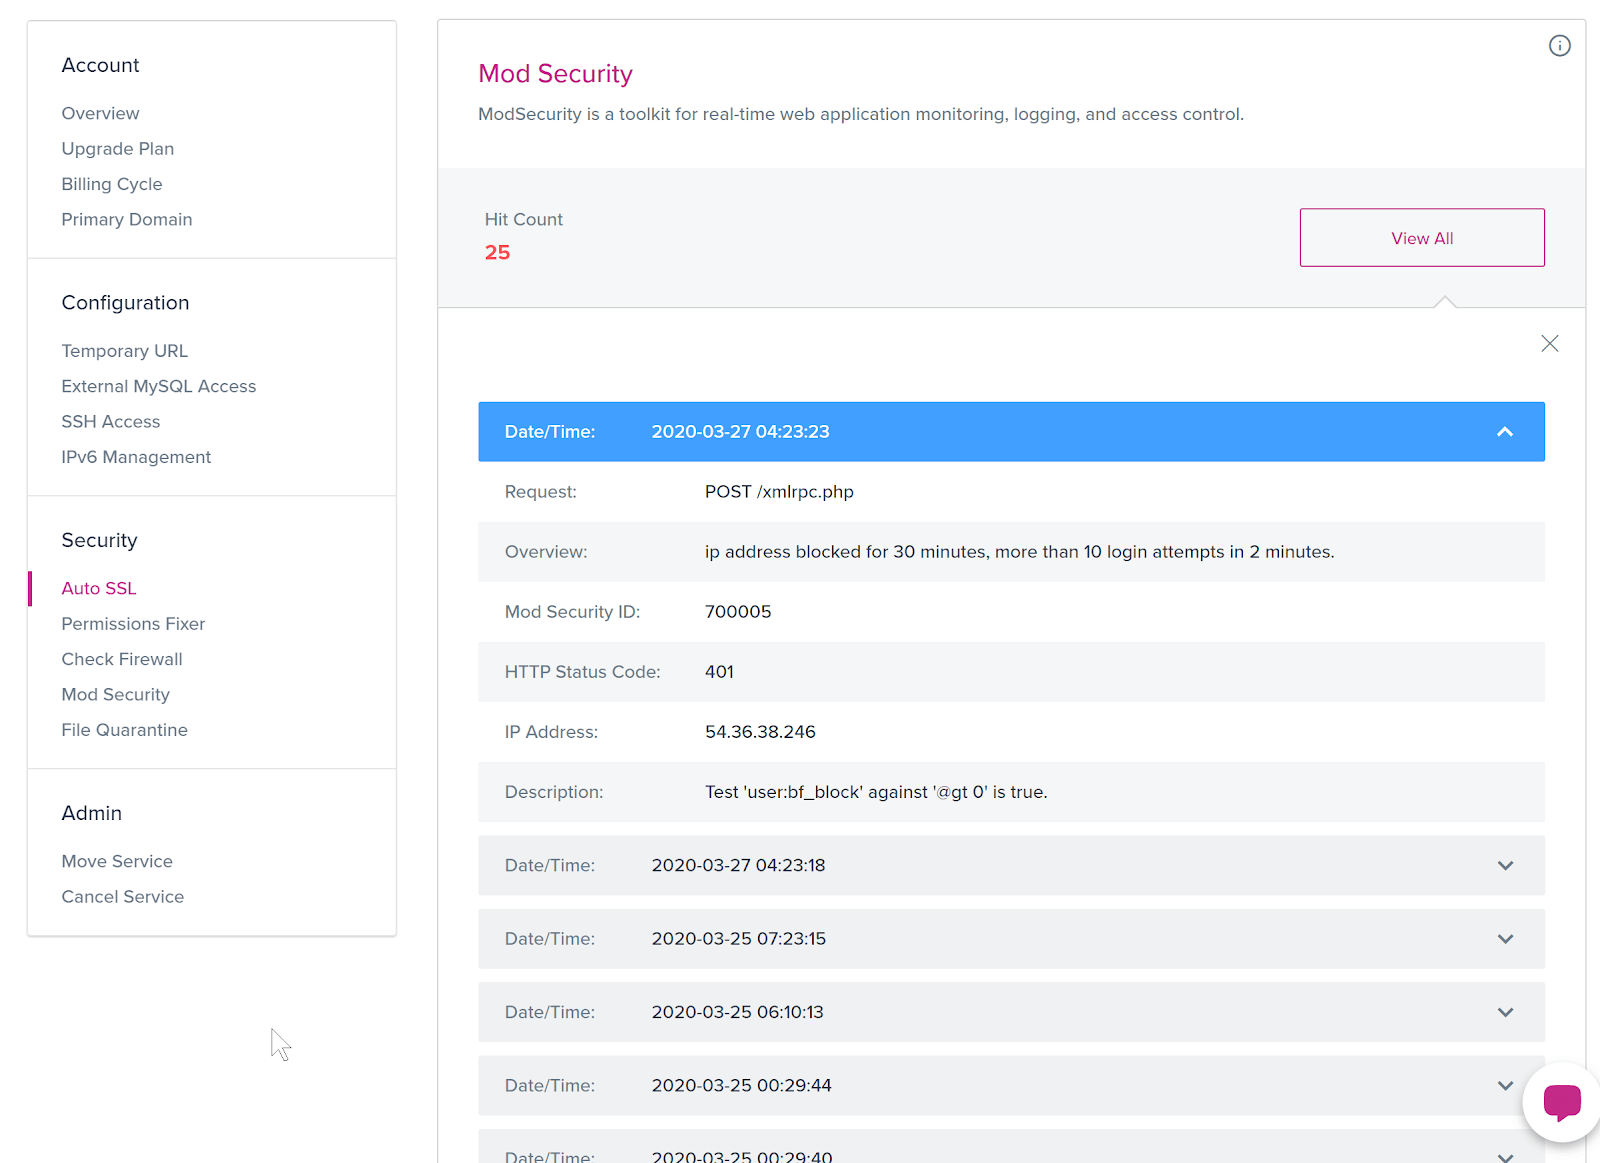 The ModSecurity overview